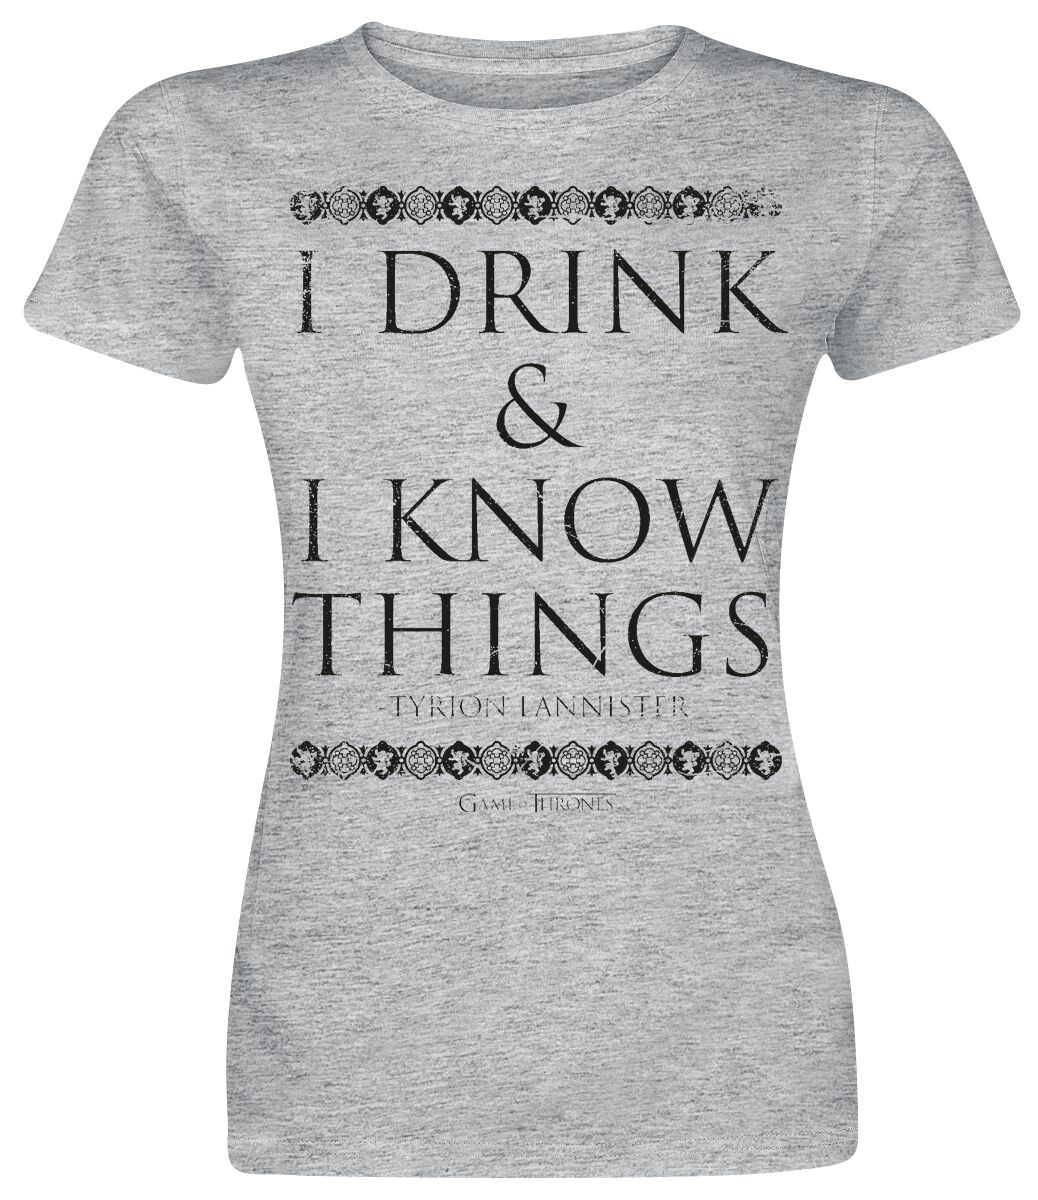 1d8d75c36 Tyrion Lannister - I Drink And I Know Things. T-Shirt. 2 Reviews. Game of  Thrones